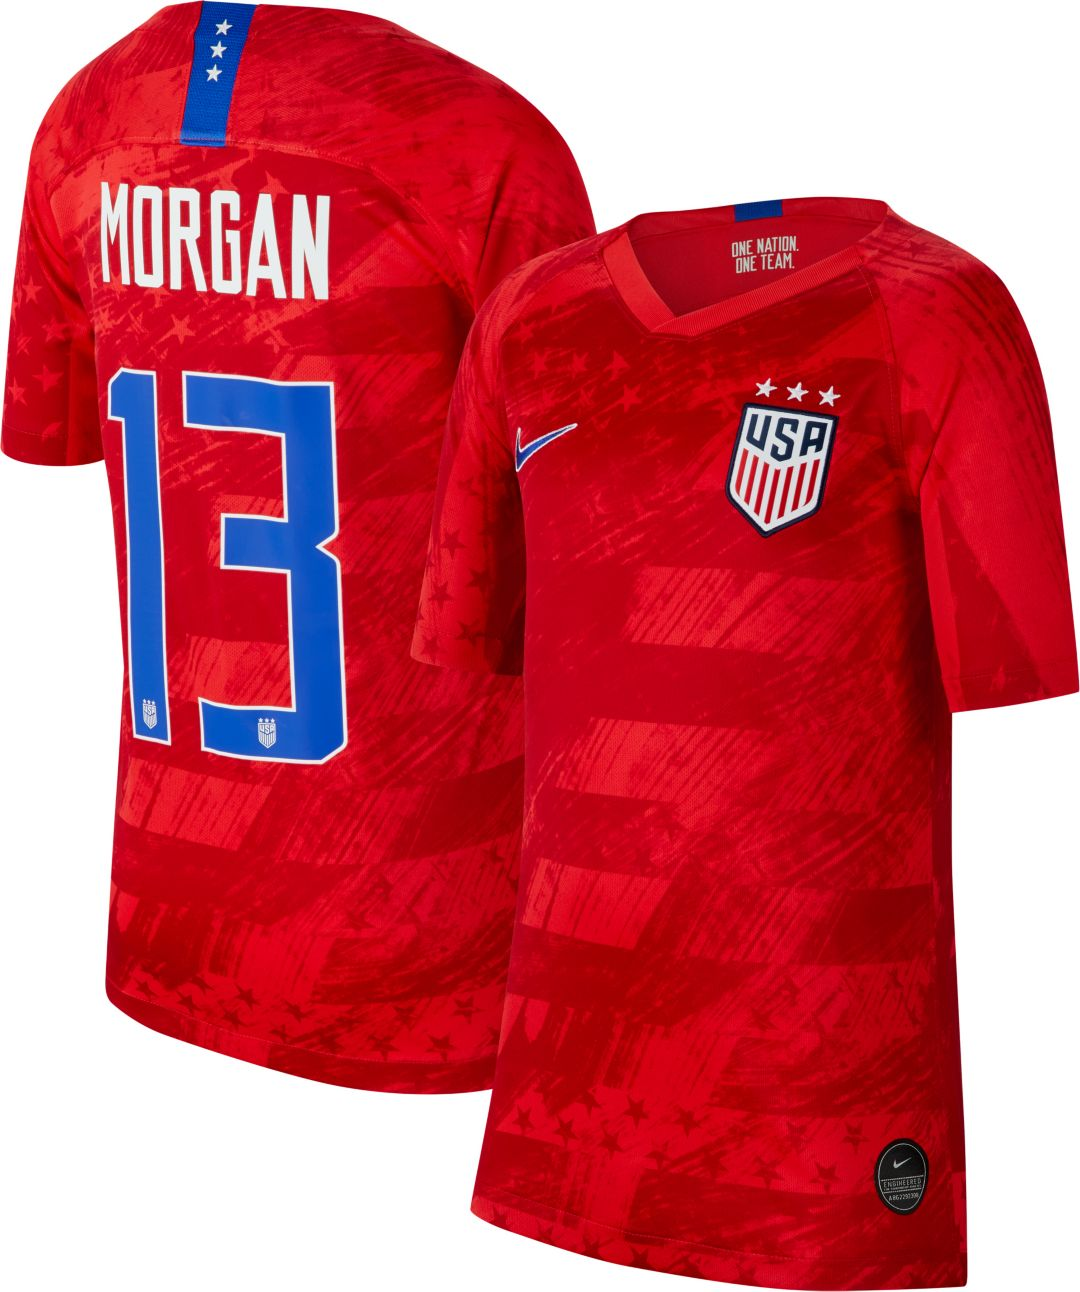 8578e8400ded Nike Youth 2019 FIFA Women's World Cup USA Soccer Alex Morgan #13 Breathe  Stadium Away